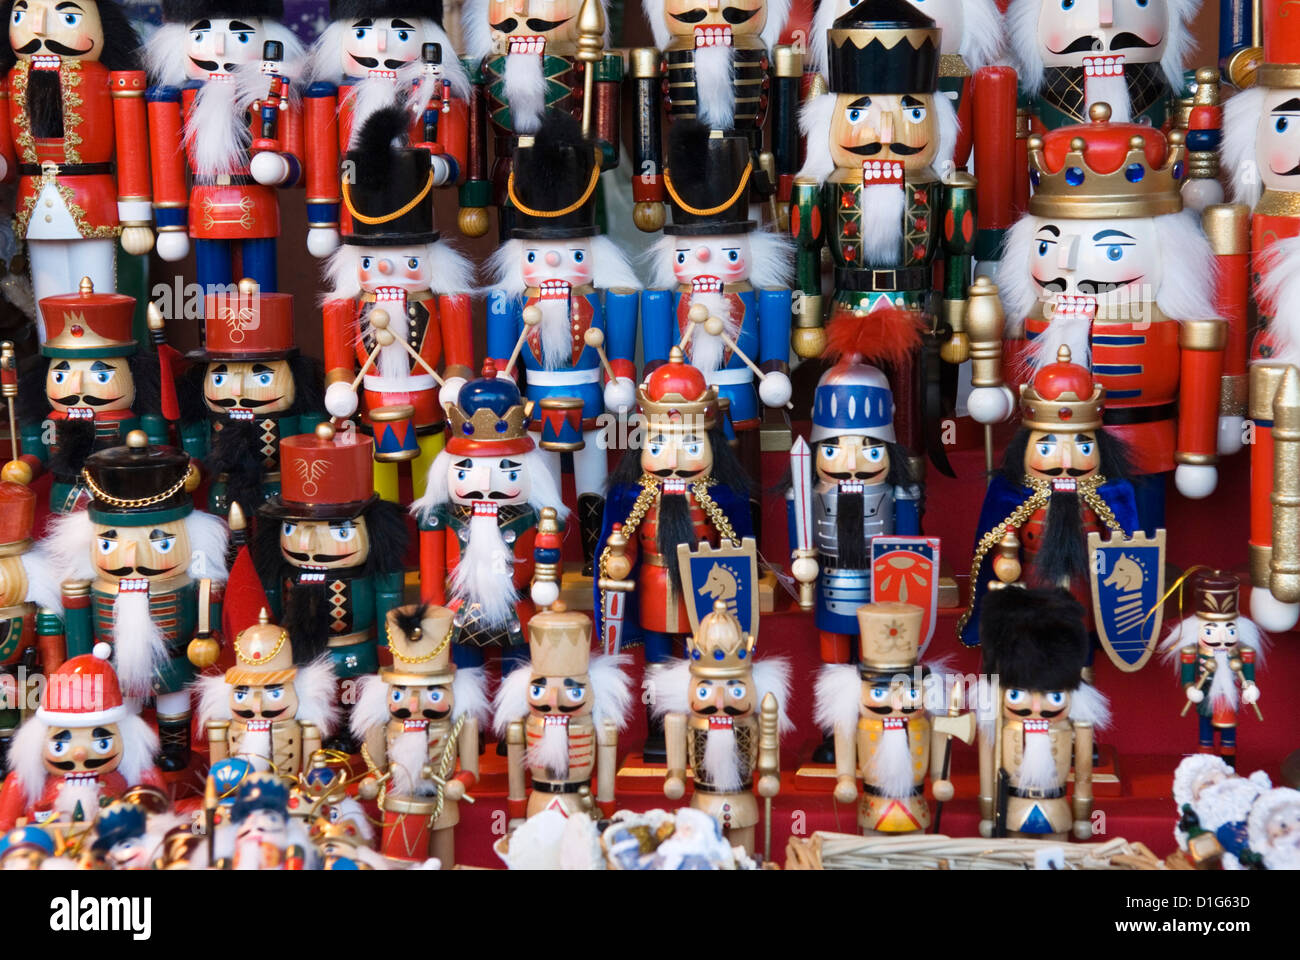 nutcracker christmas german stockfotos nutcracker christmas german bilder alamy. Black Bedroom Furniture Sets. Home Design Ideas